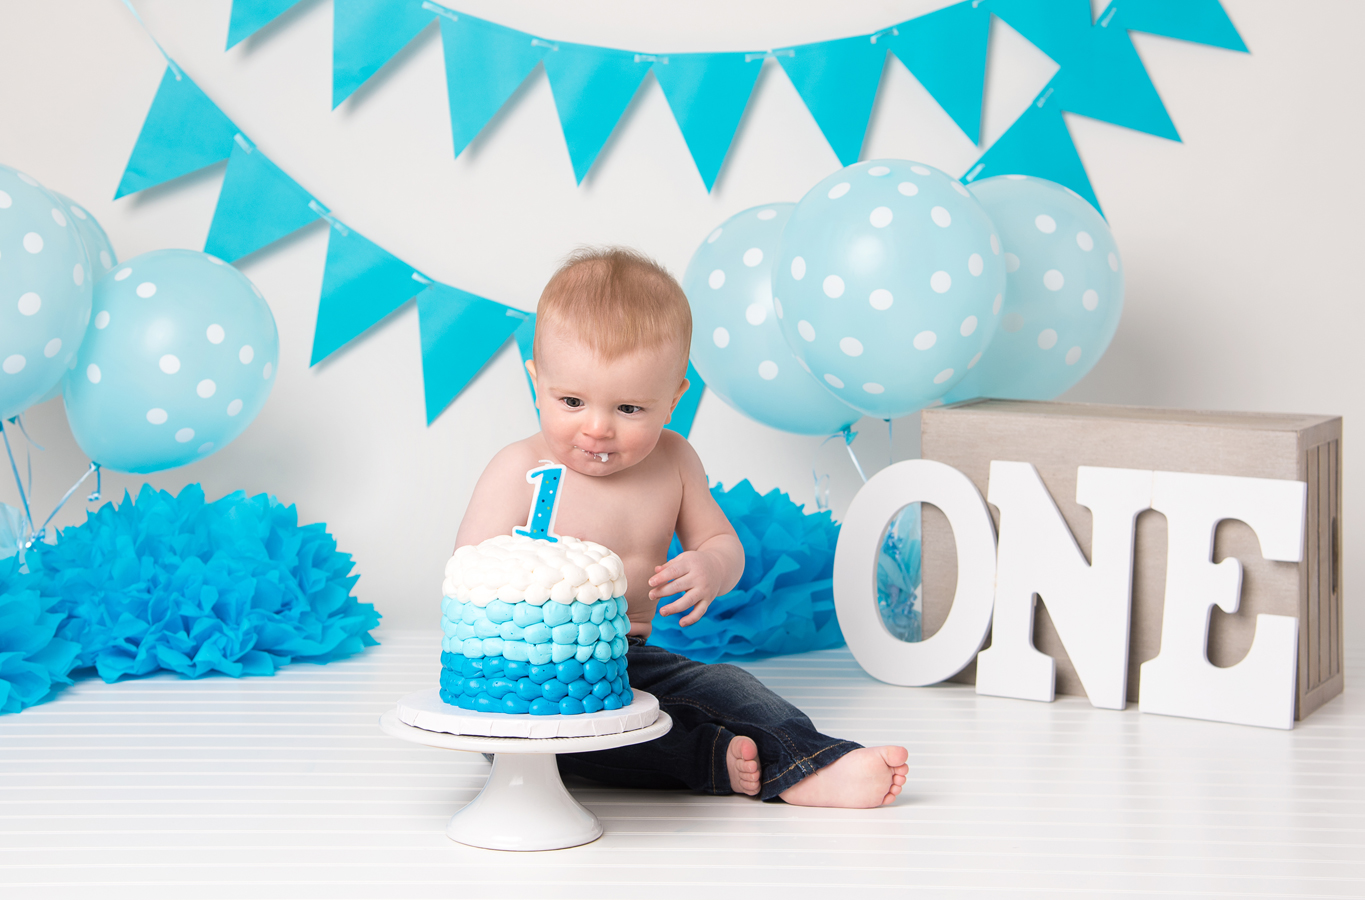 One Year Cake Smash, Photography Studio, Ham Lake, Blaine, Andover